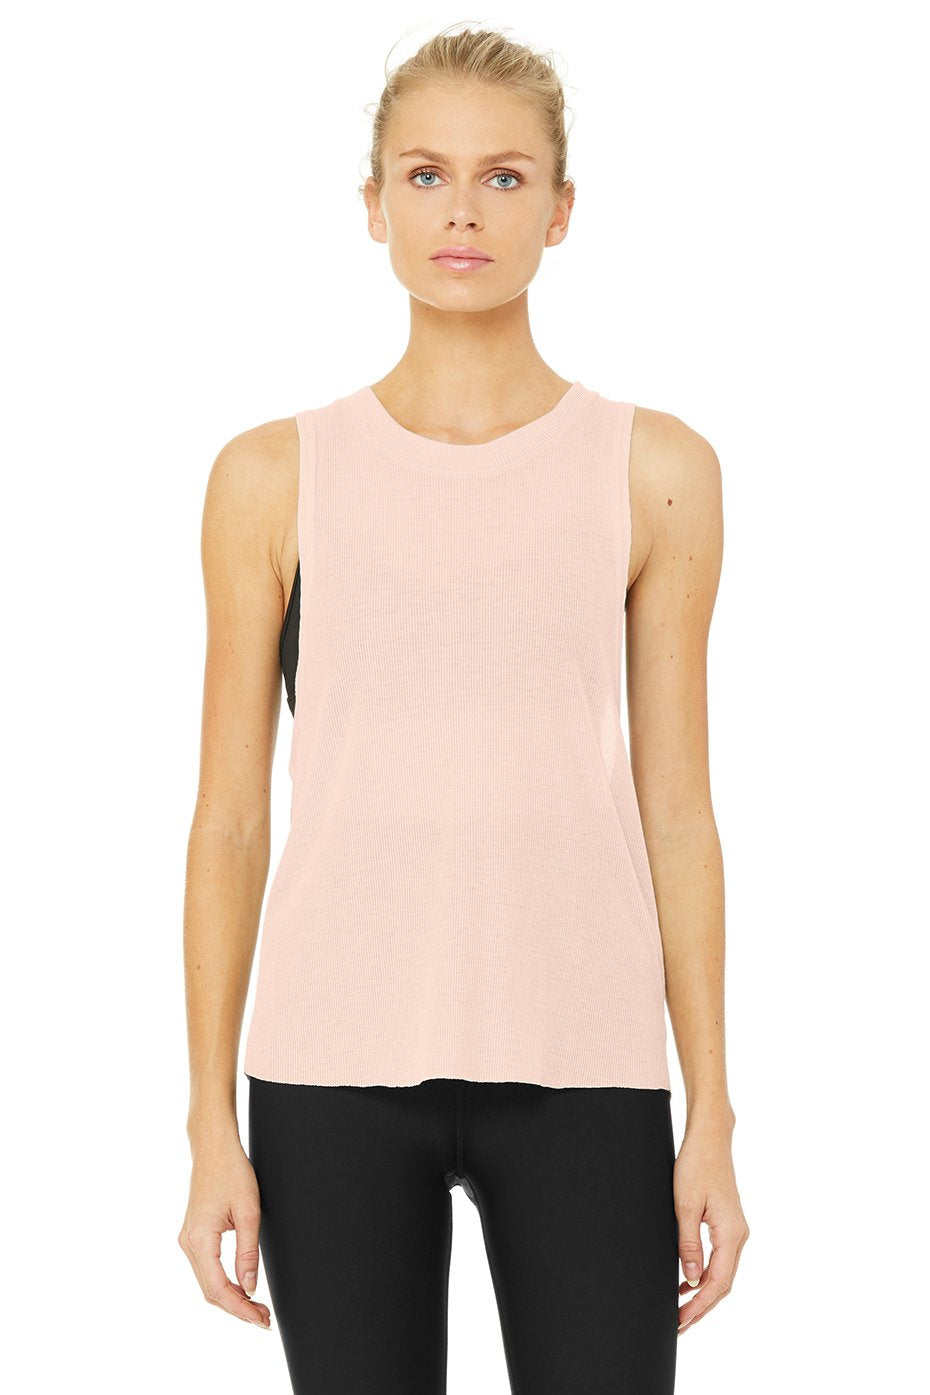 Alo Yoga Heat-Wave Tank - Nectar